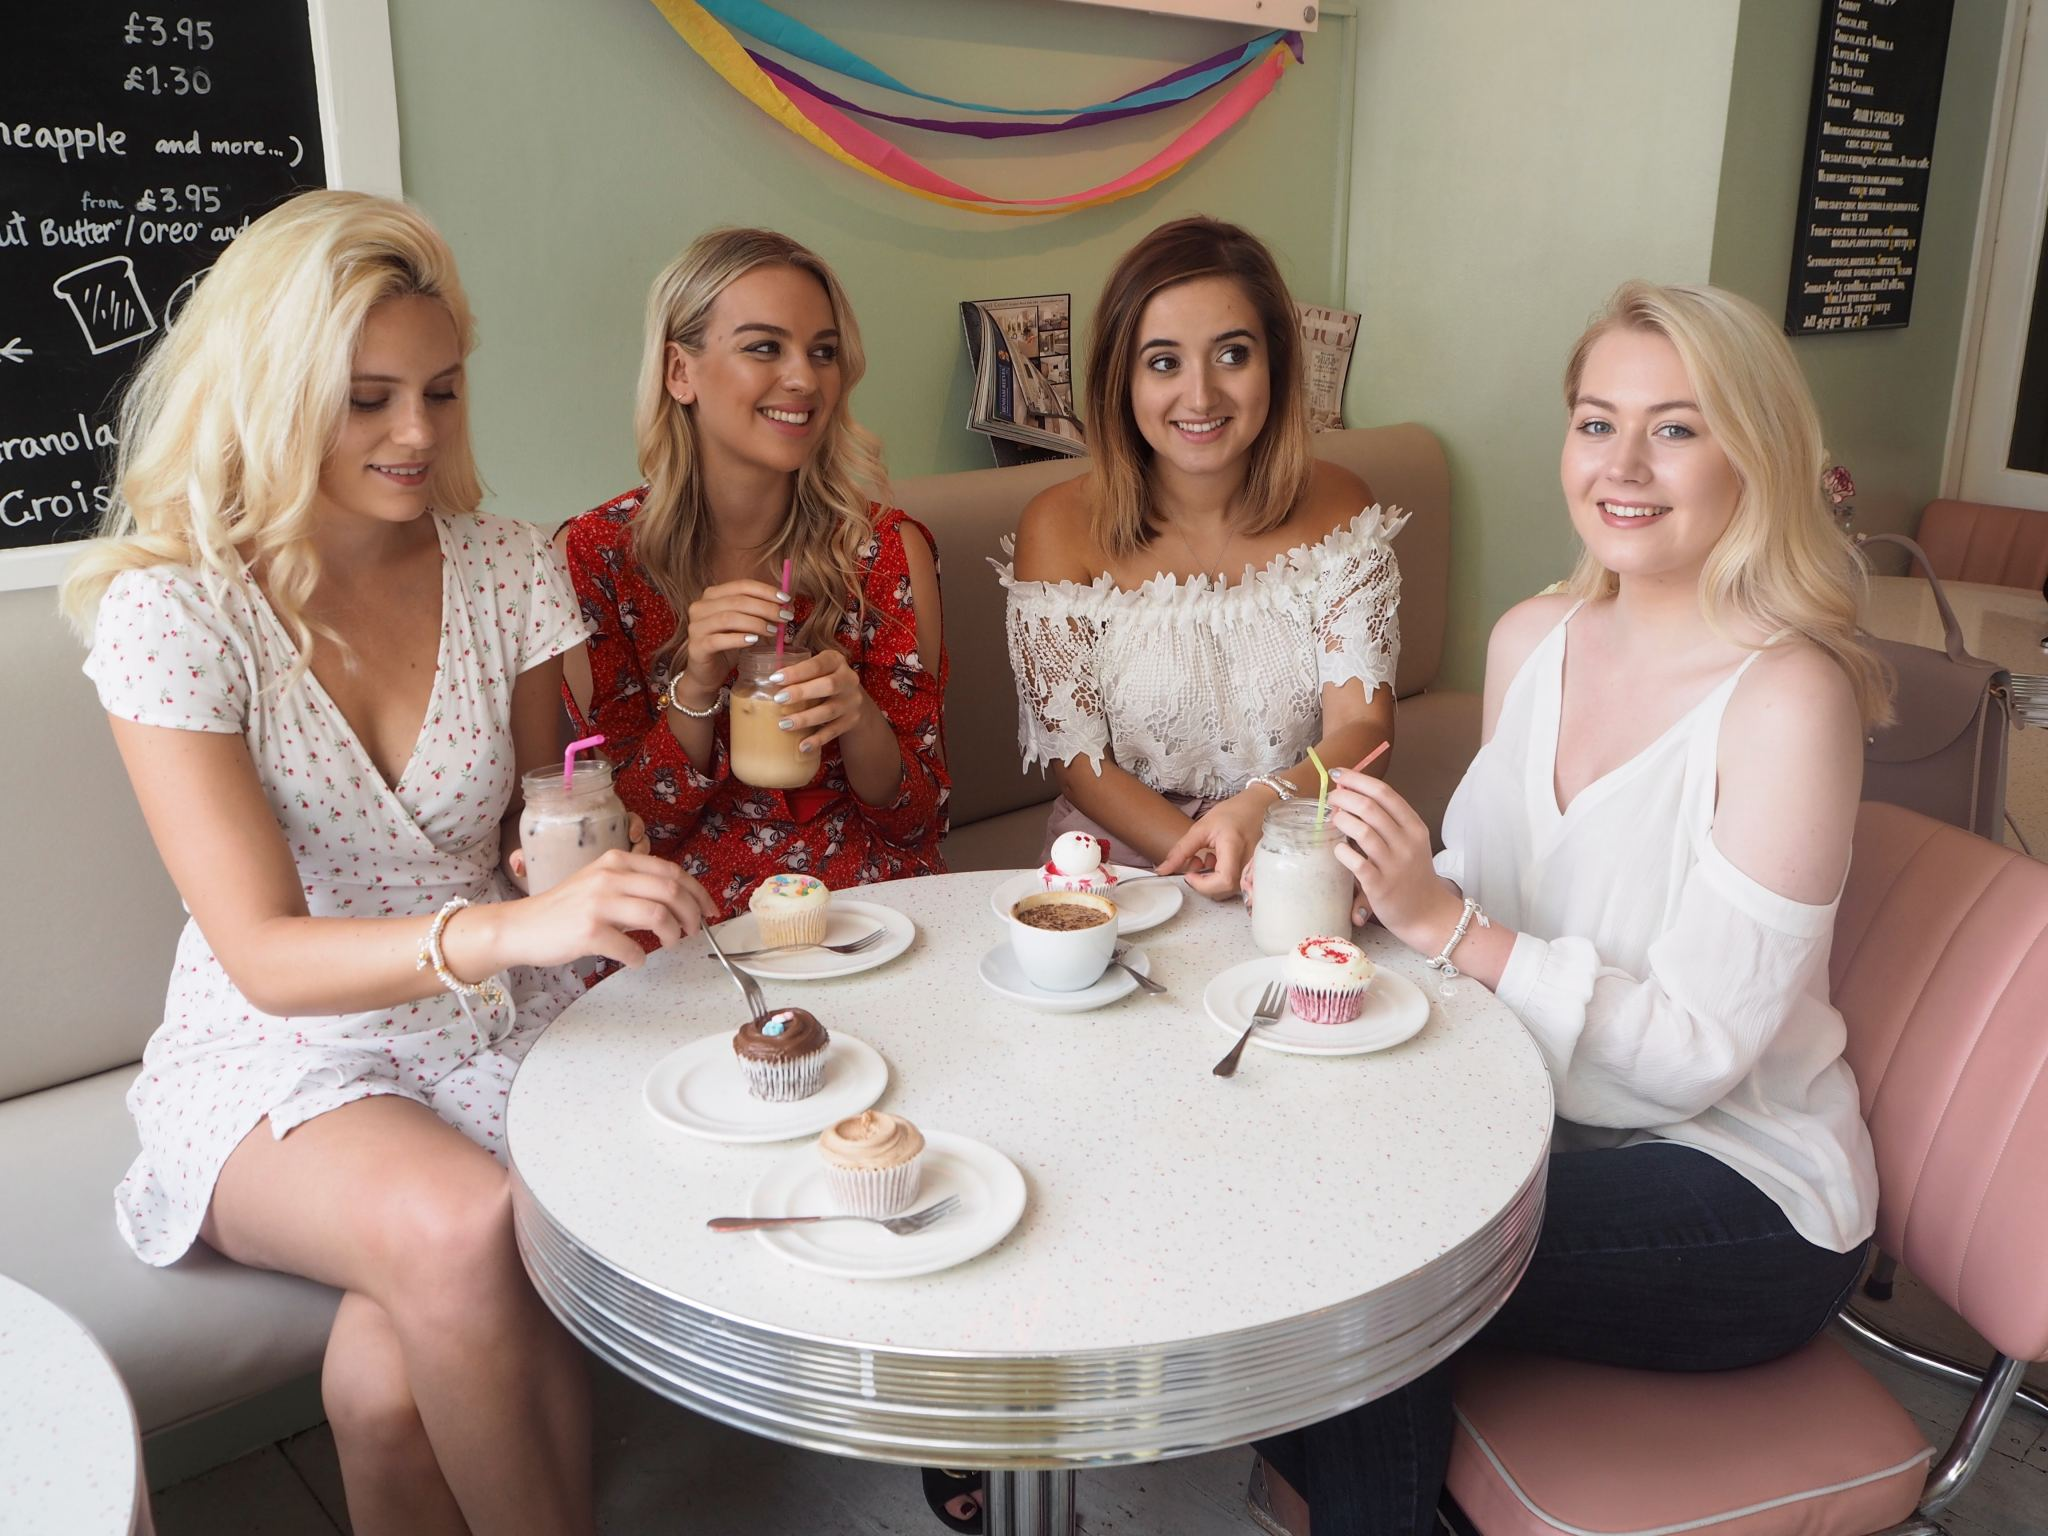 cocoa chelsea and Links of London shoot with girls